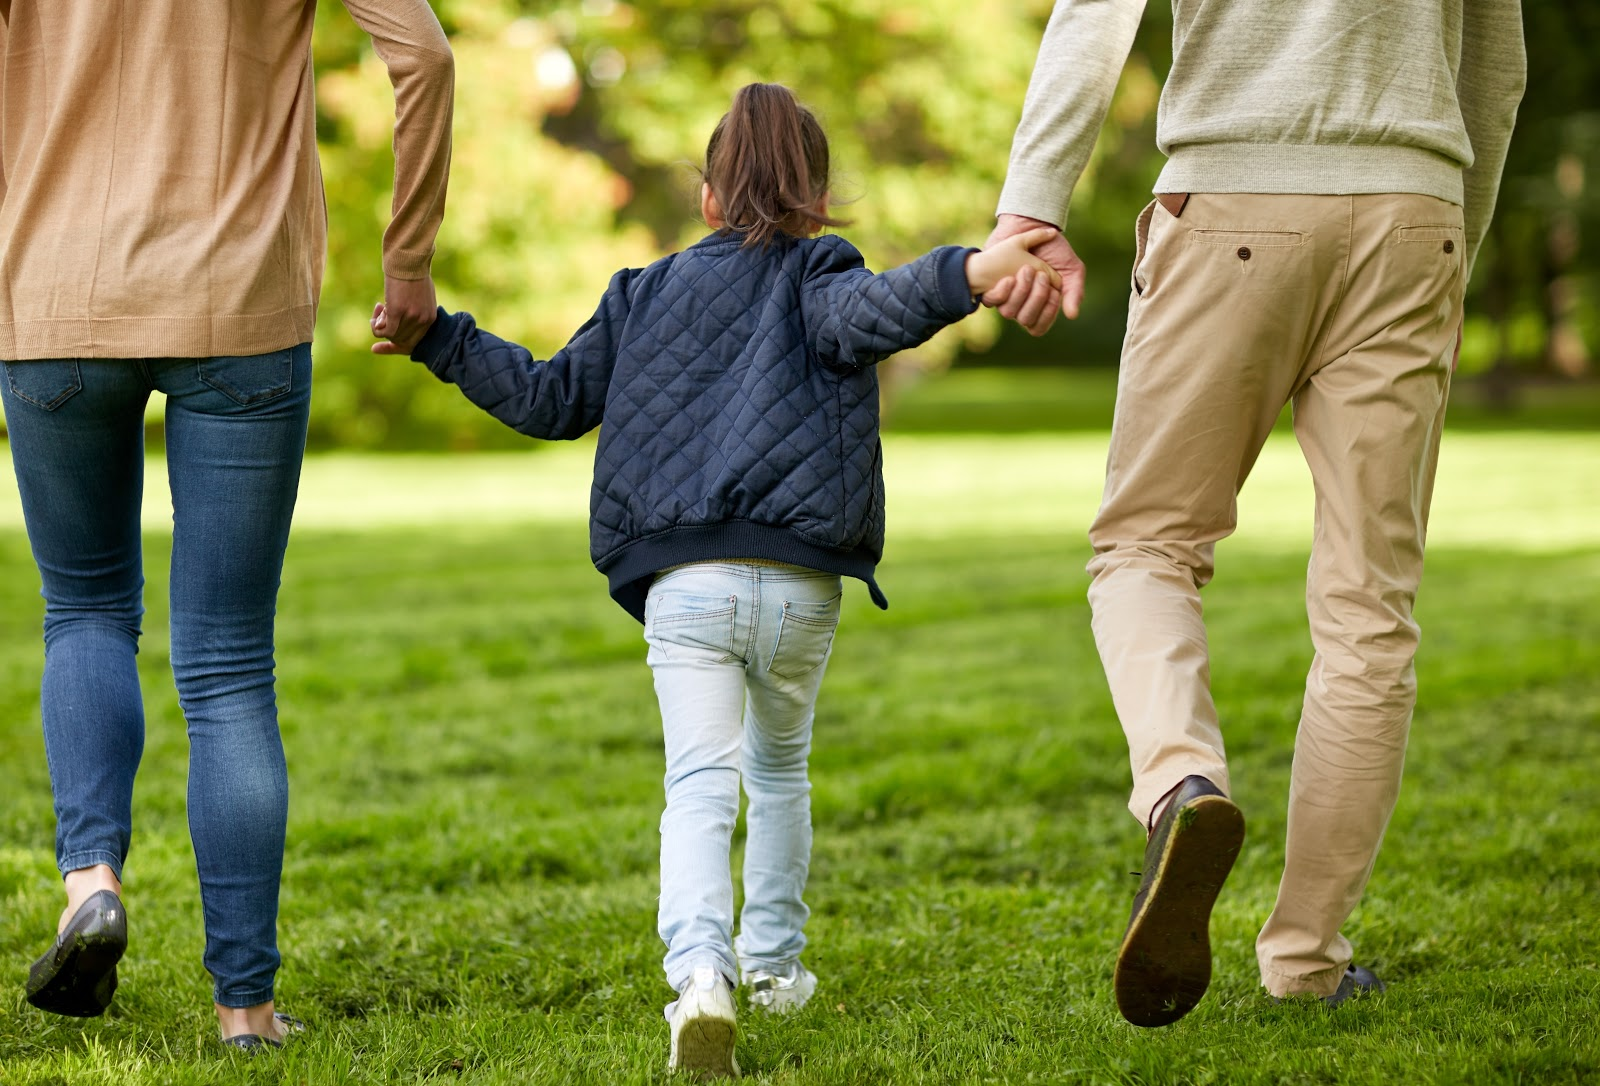 Little girl with one hand held by each parent walking through the grass